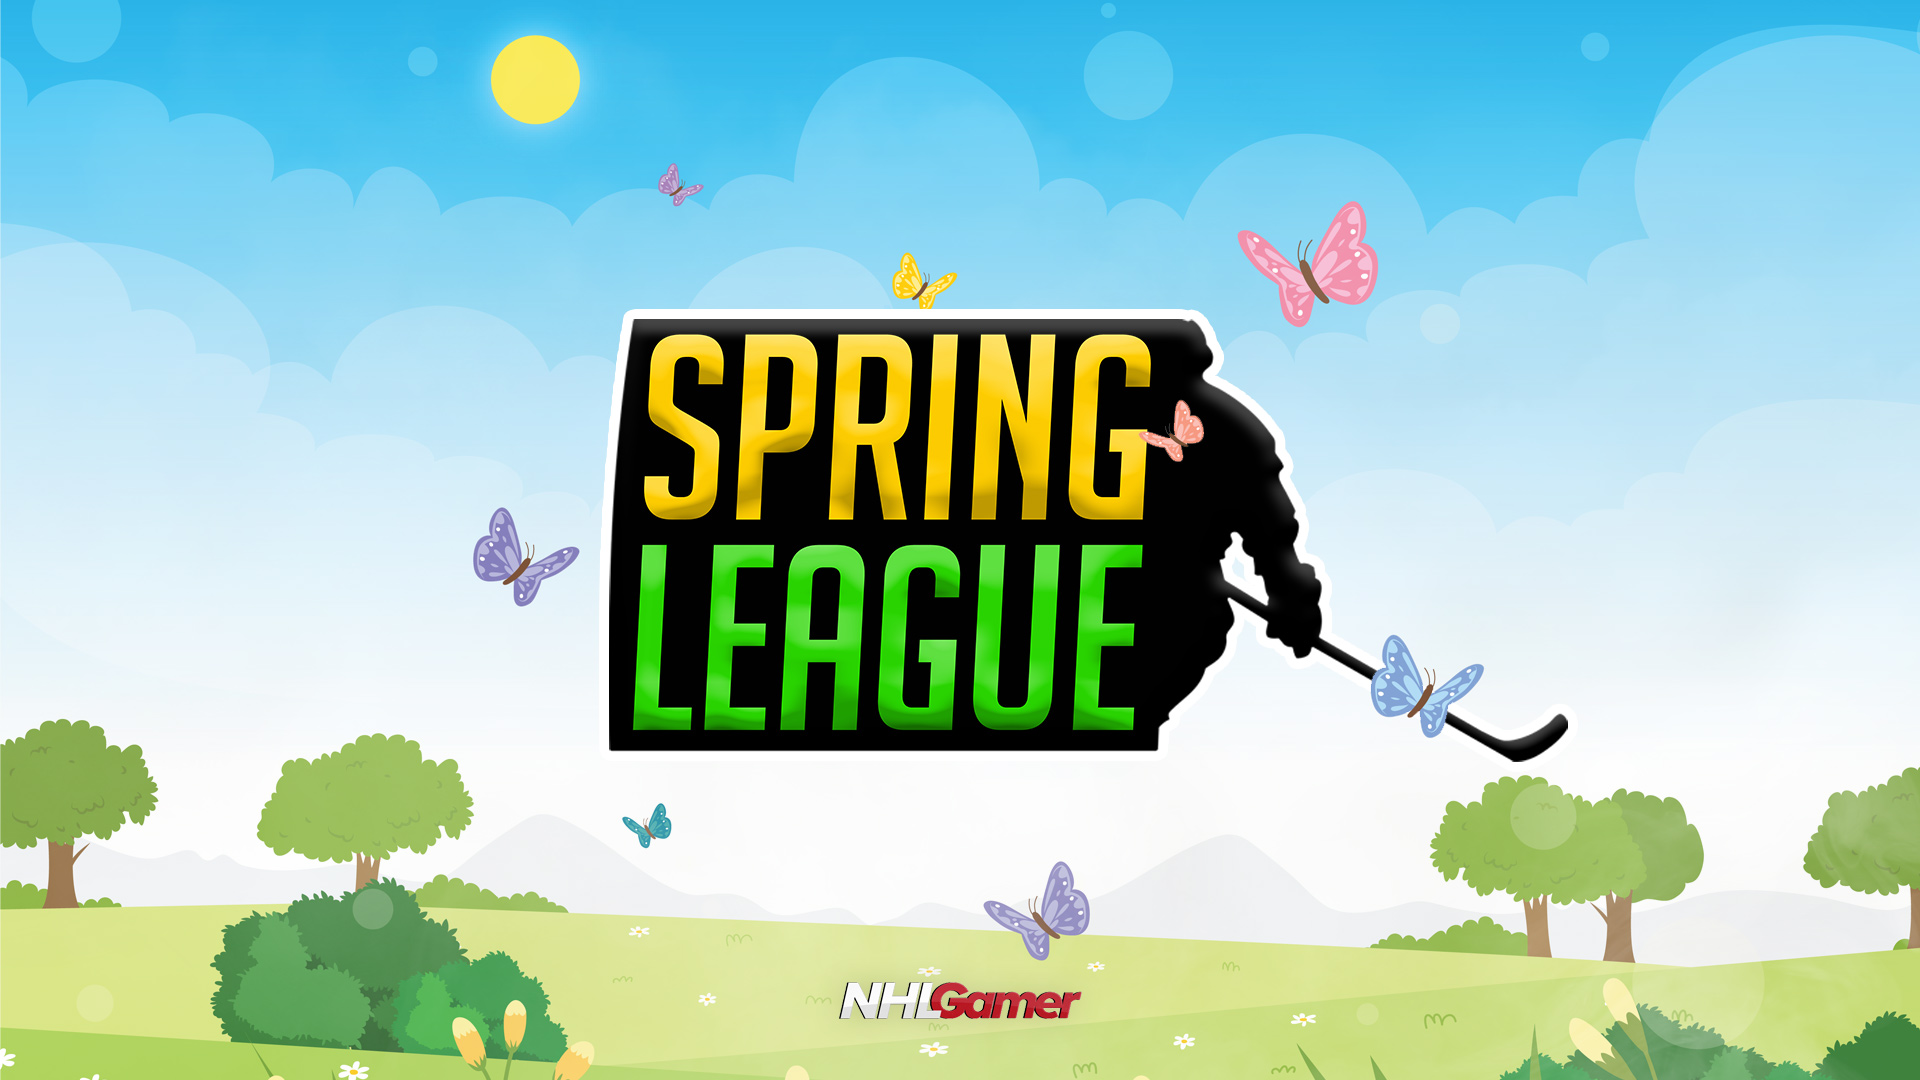 Spring_League_poster.jpg